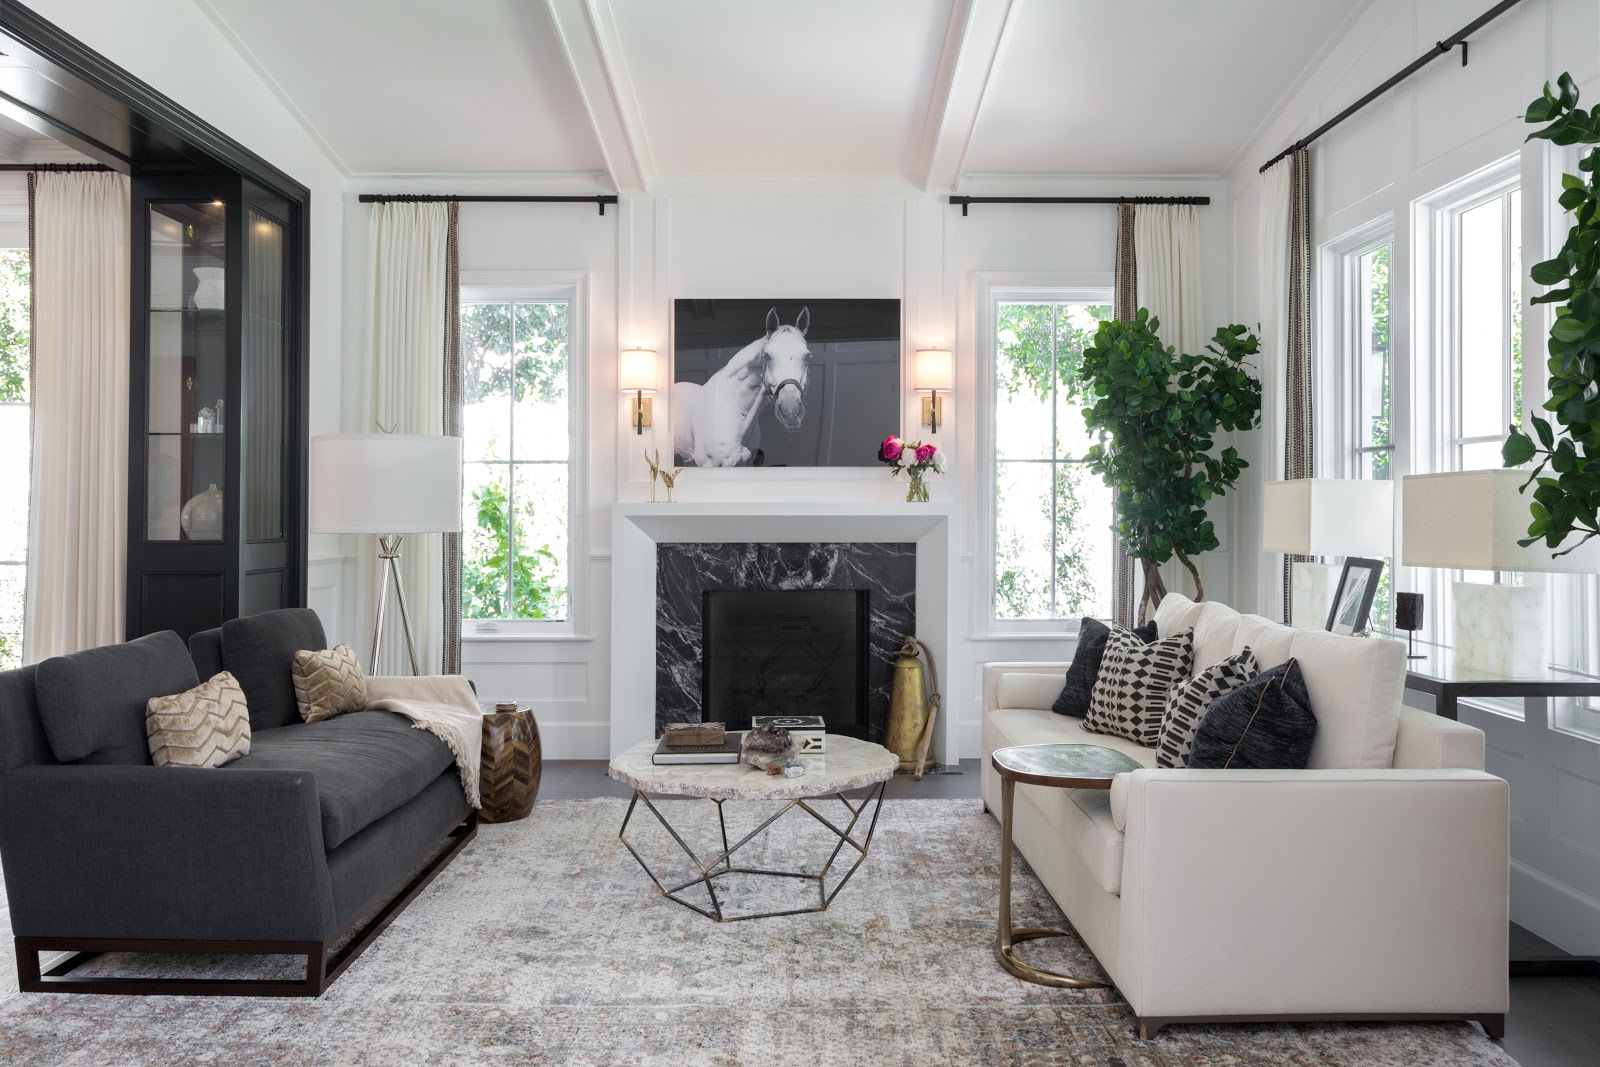 Los Angeles modern chic black and white living room - Laura U Interior Design